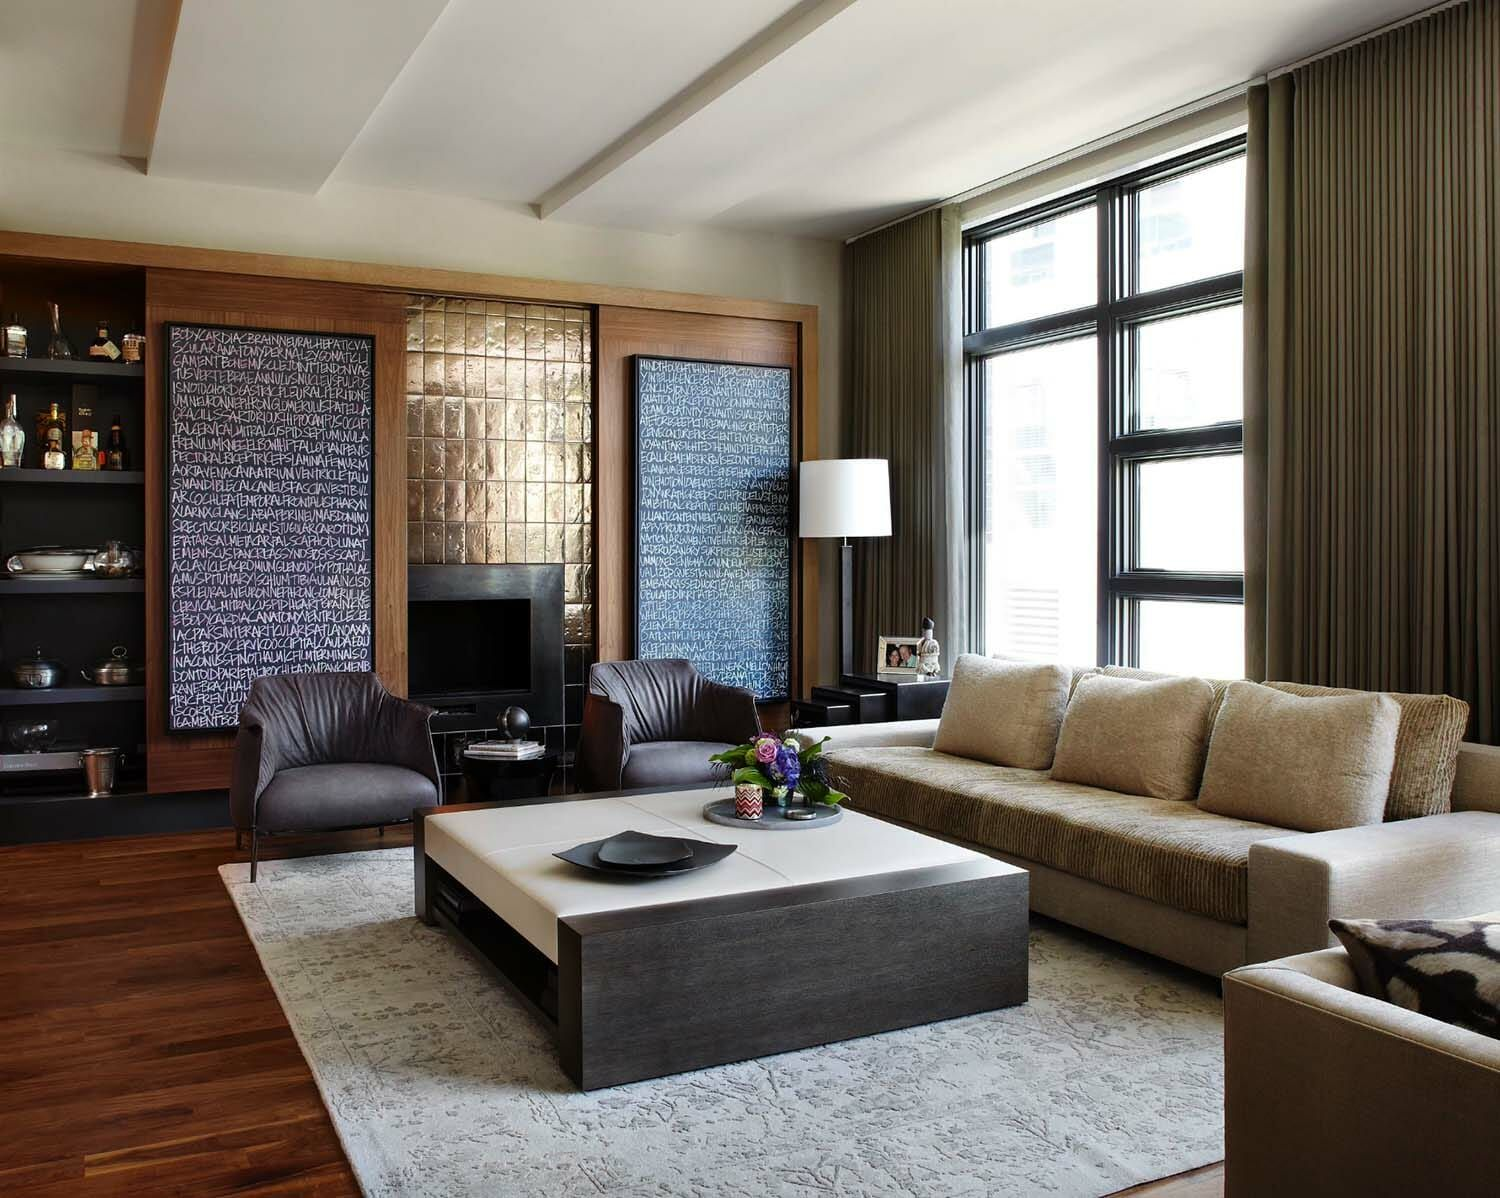 Multi-level Townhouse In Chicago Showcases Urban-chic